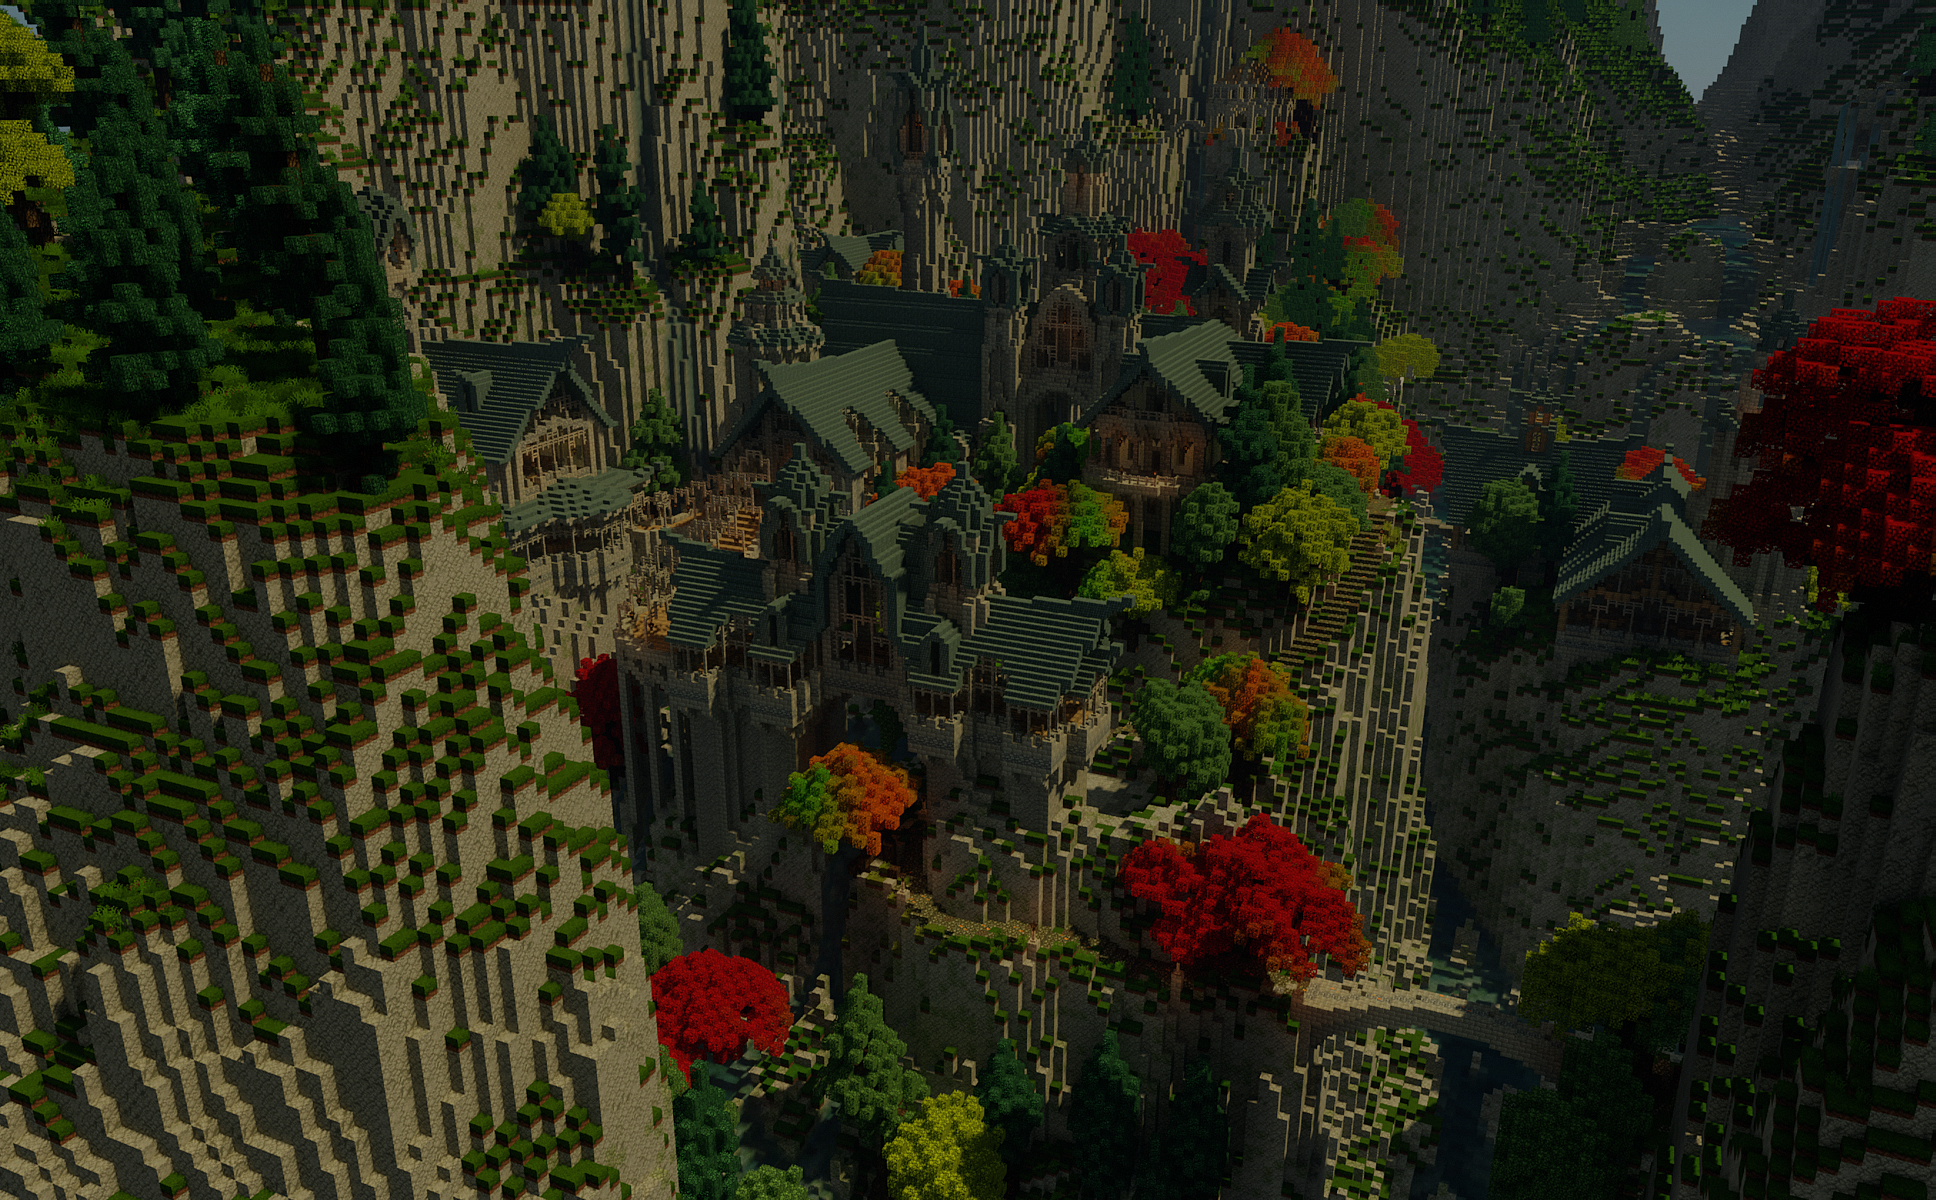 Rivendell 1.png